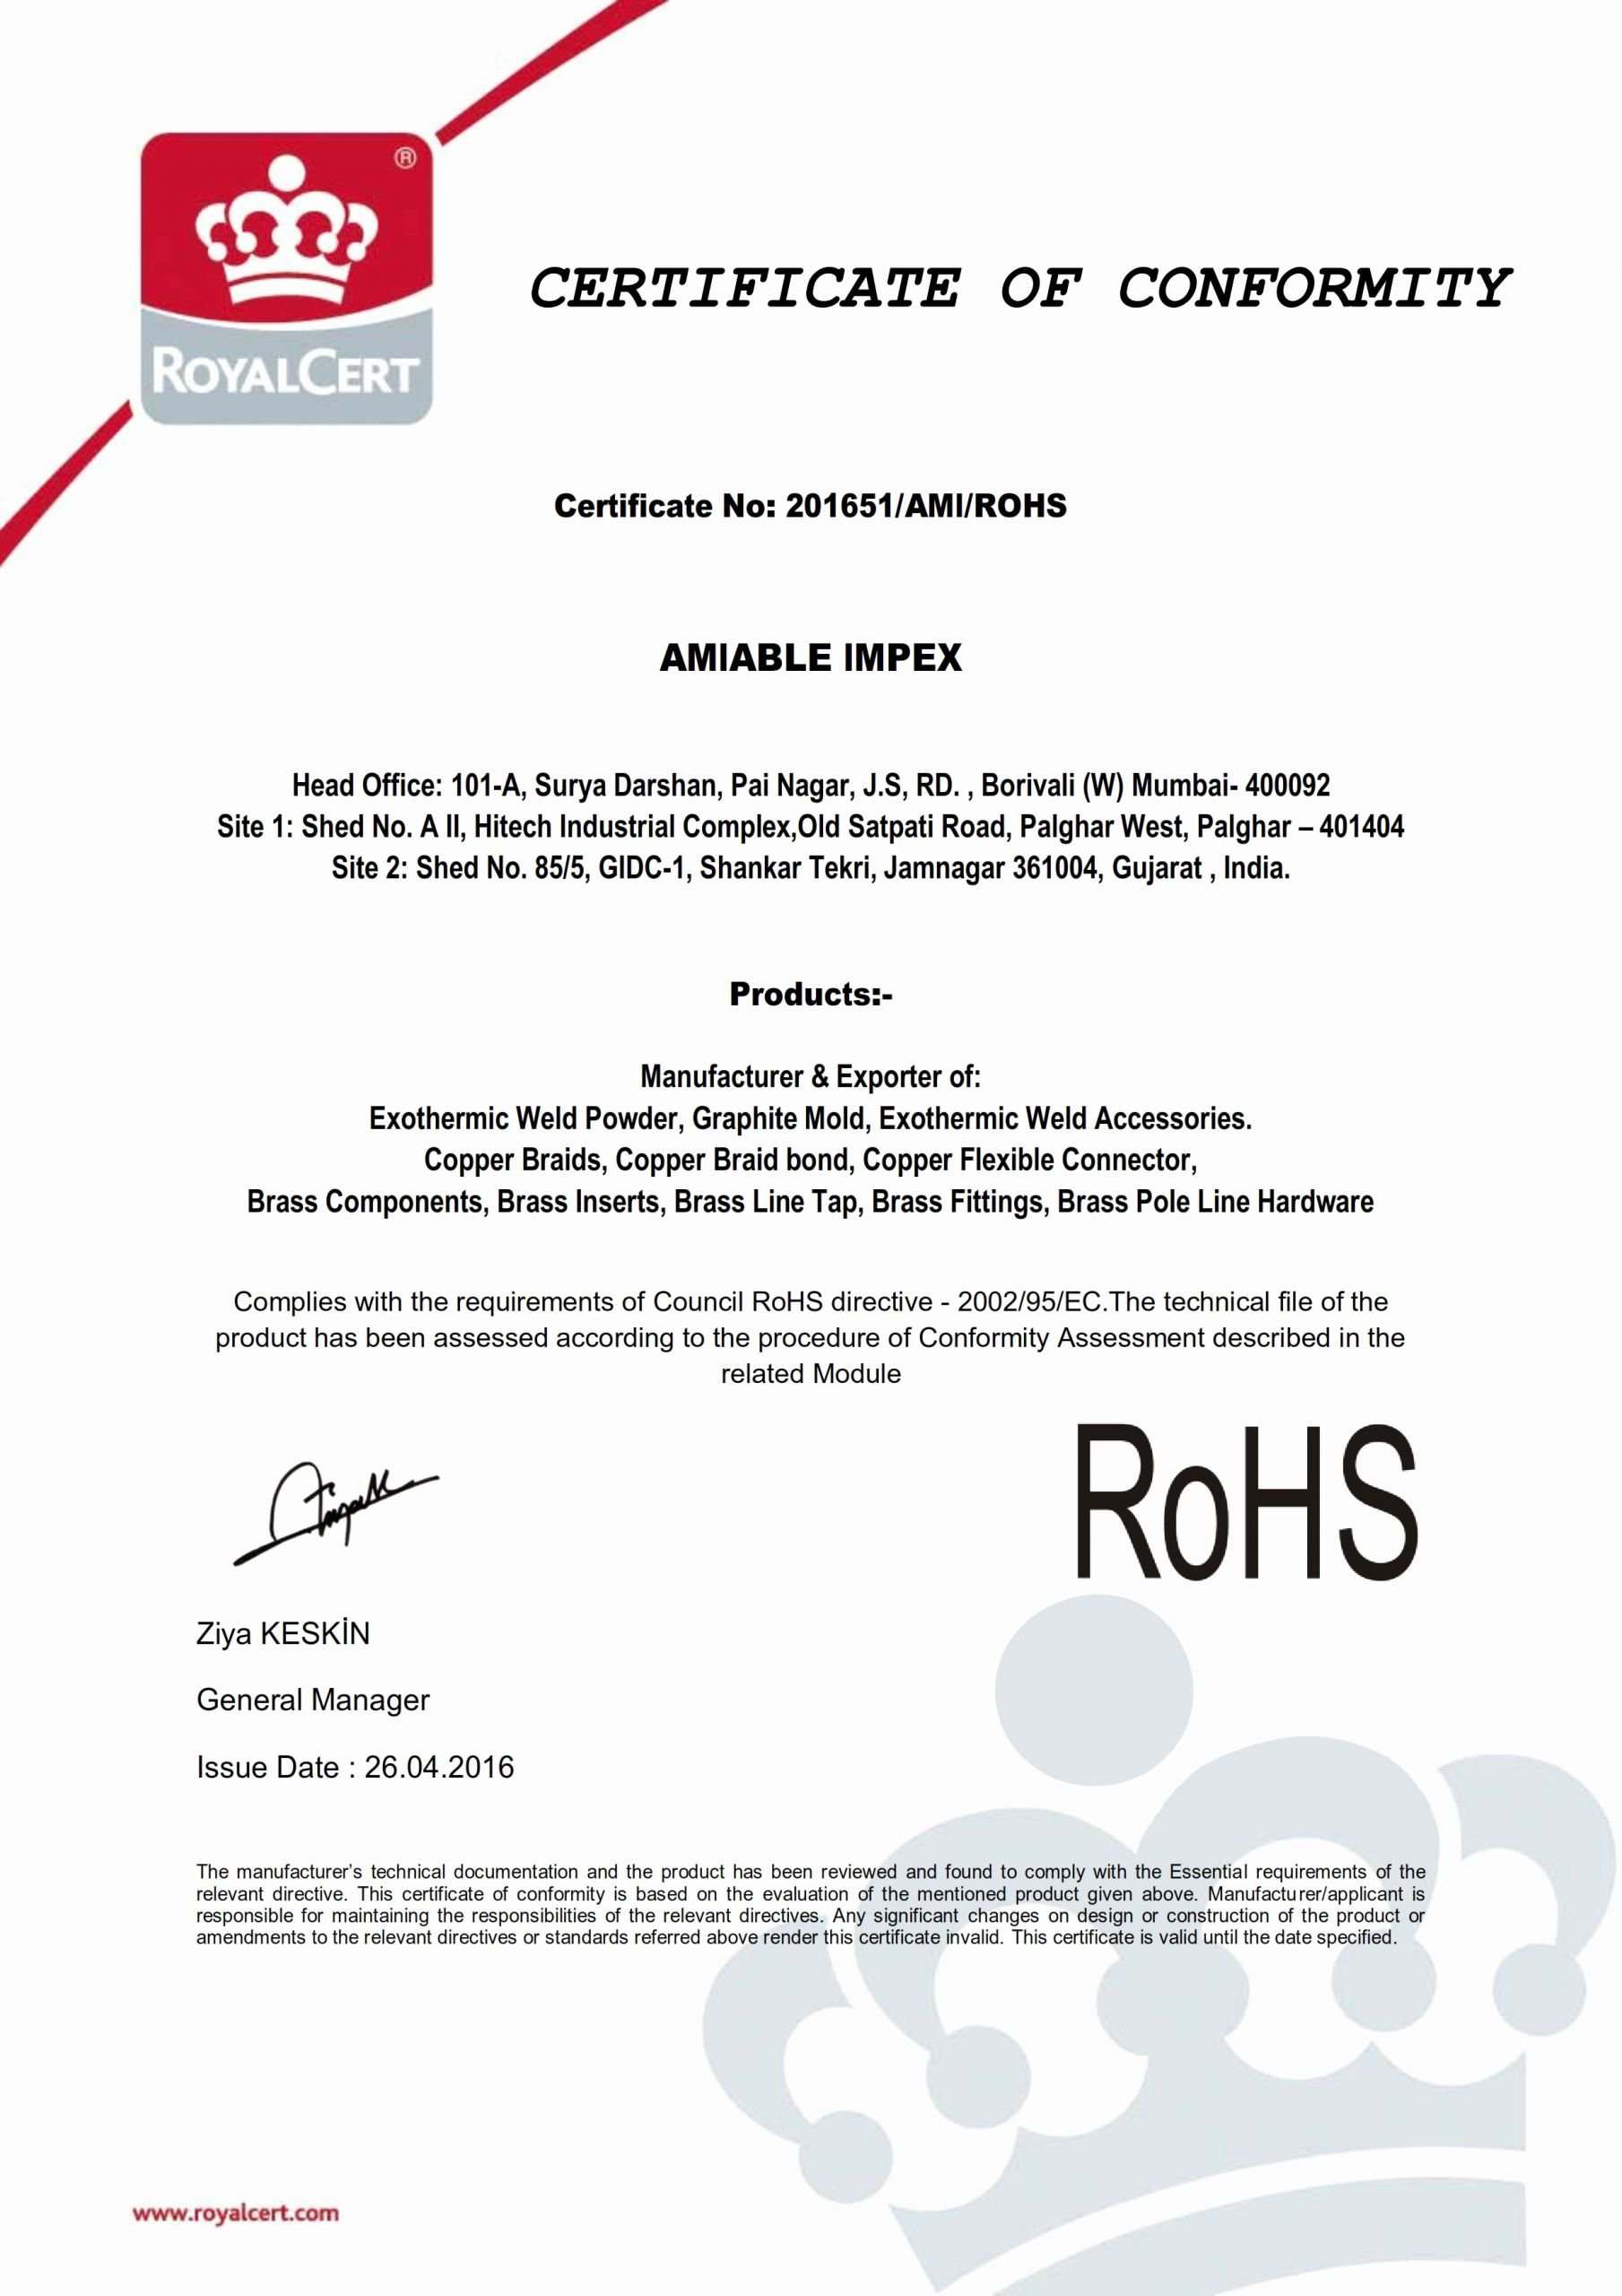 Rohs Compliance Certificate Template Awesome Exothermic Welding Certificate